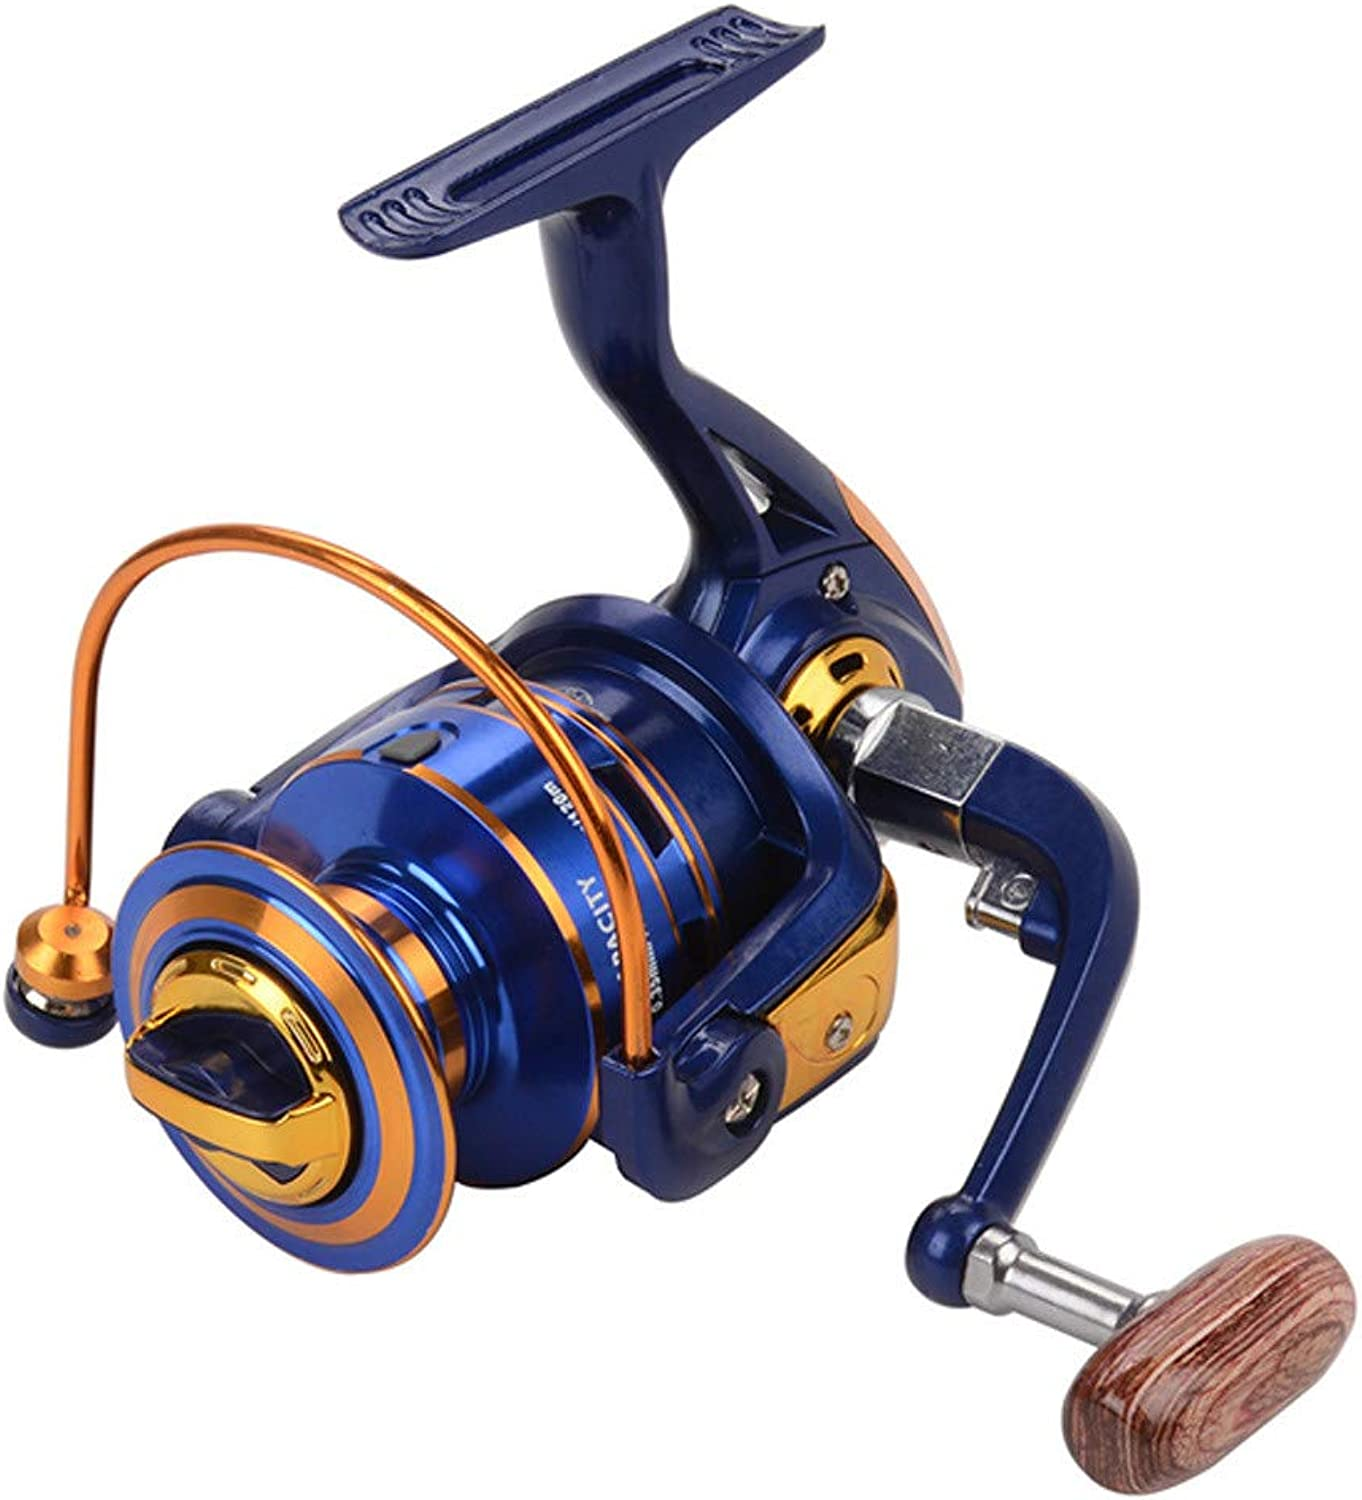 Fishing reels for Saltwater Freshwater Fishing Spinning Fishing Reel 12 Bearings Left Right Interchangeable Handle with Double Drag Brake System (Size   2000)